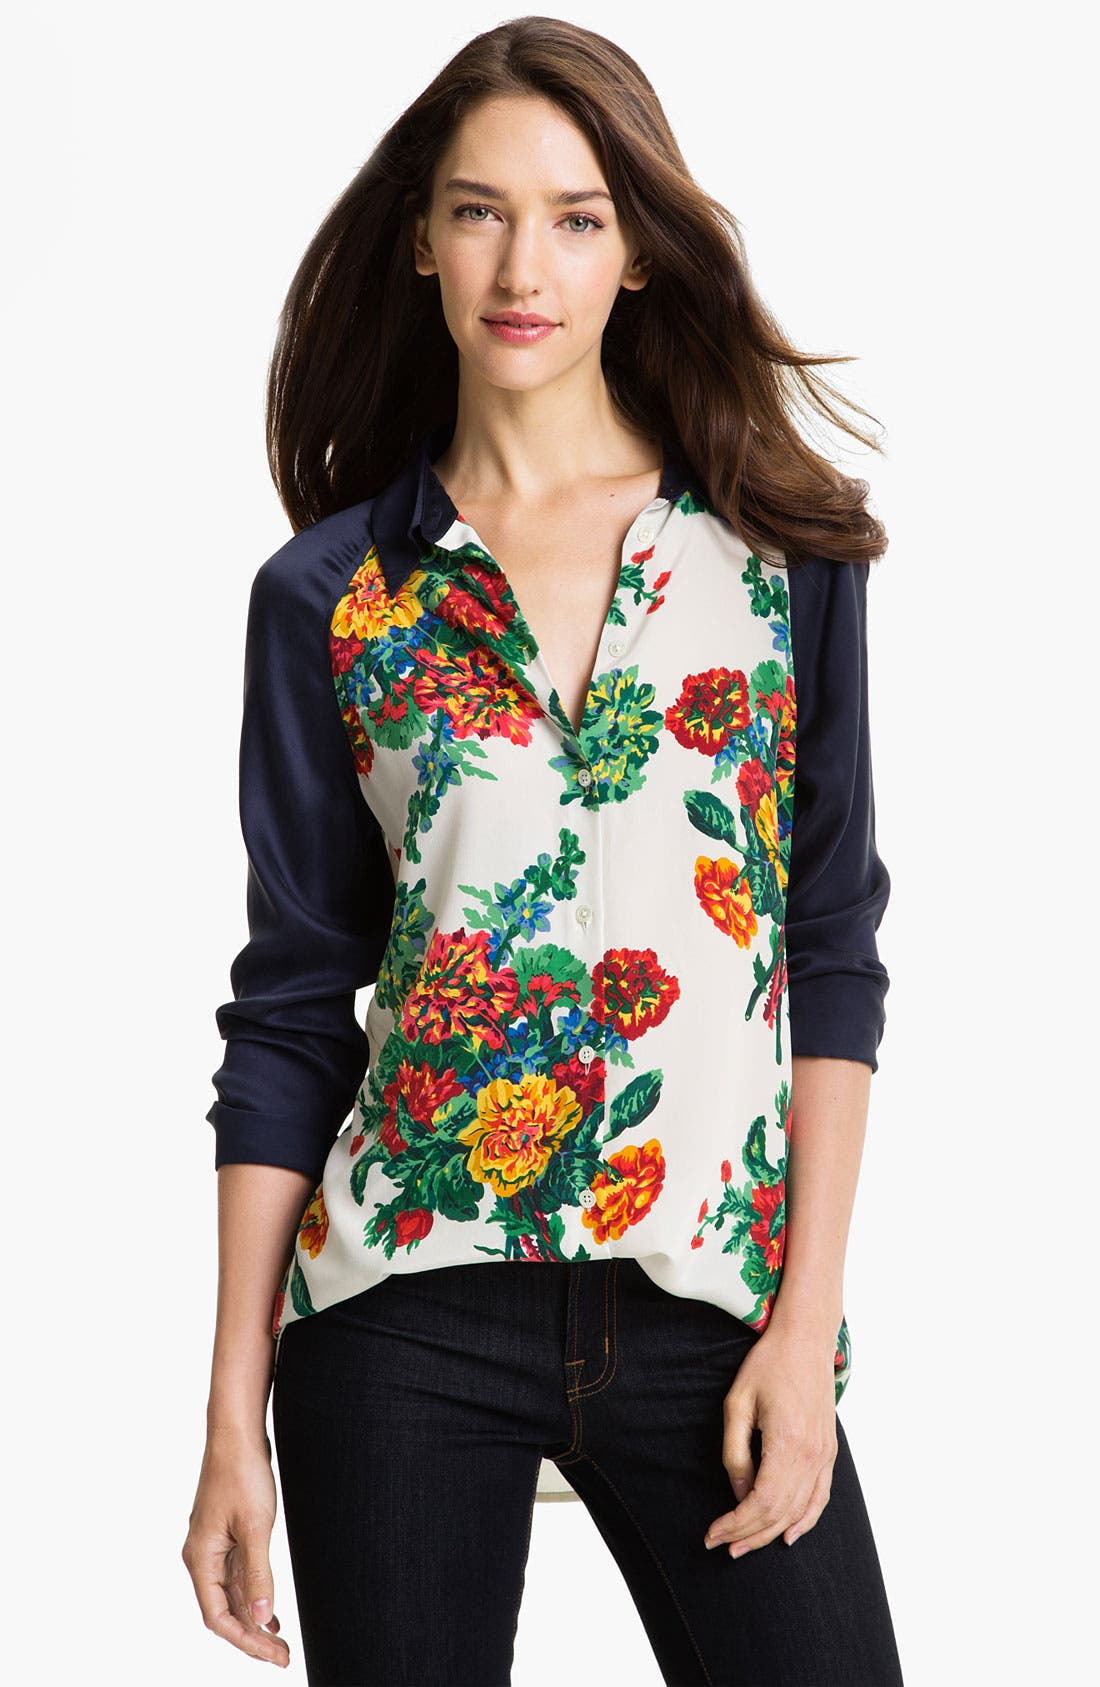 Alternate Image 1 Selected - Equipment 'Venetian Bouquet' Silk Blouse (Online Exclusive)